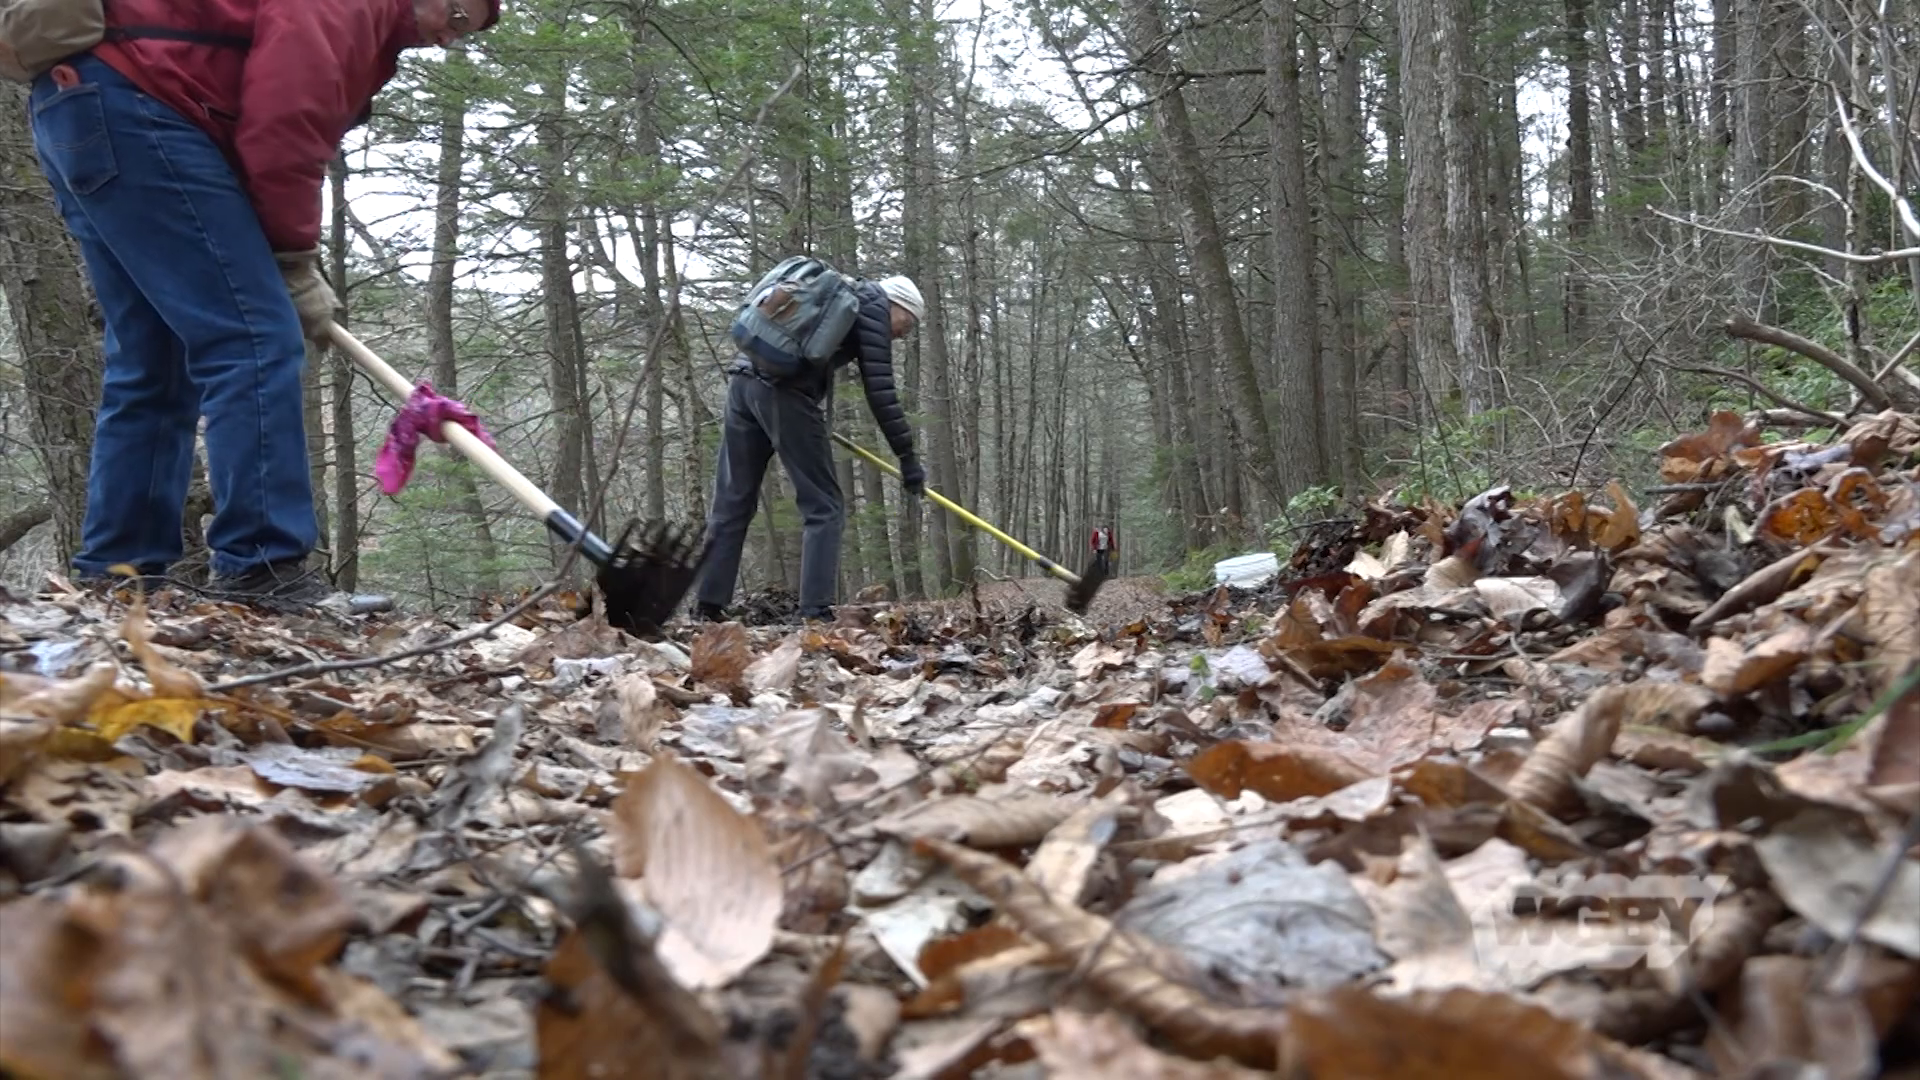 Hit the trails with volunteers from the Wild and Scenic Westfield River Committee as they clean up the East Branch Trail of the Chesterfield Gorge.